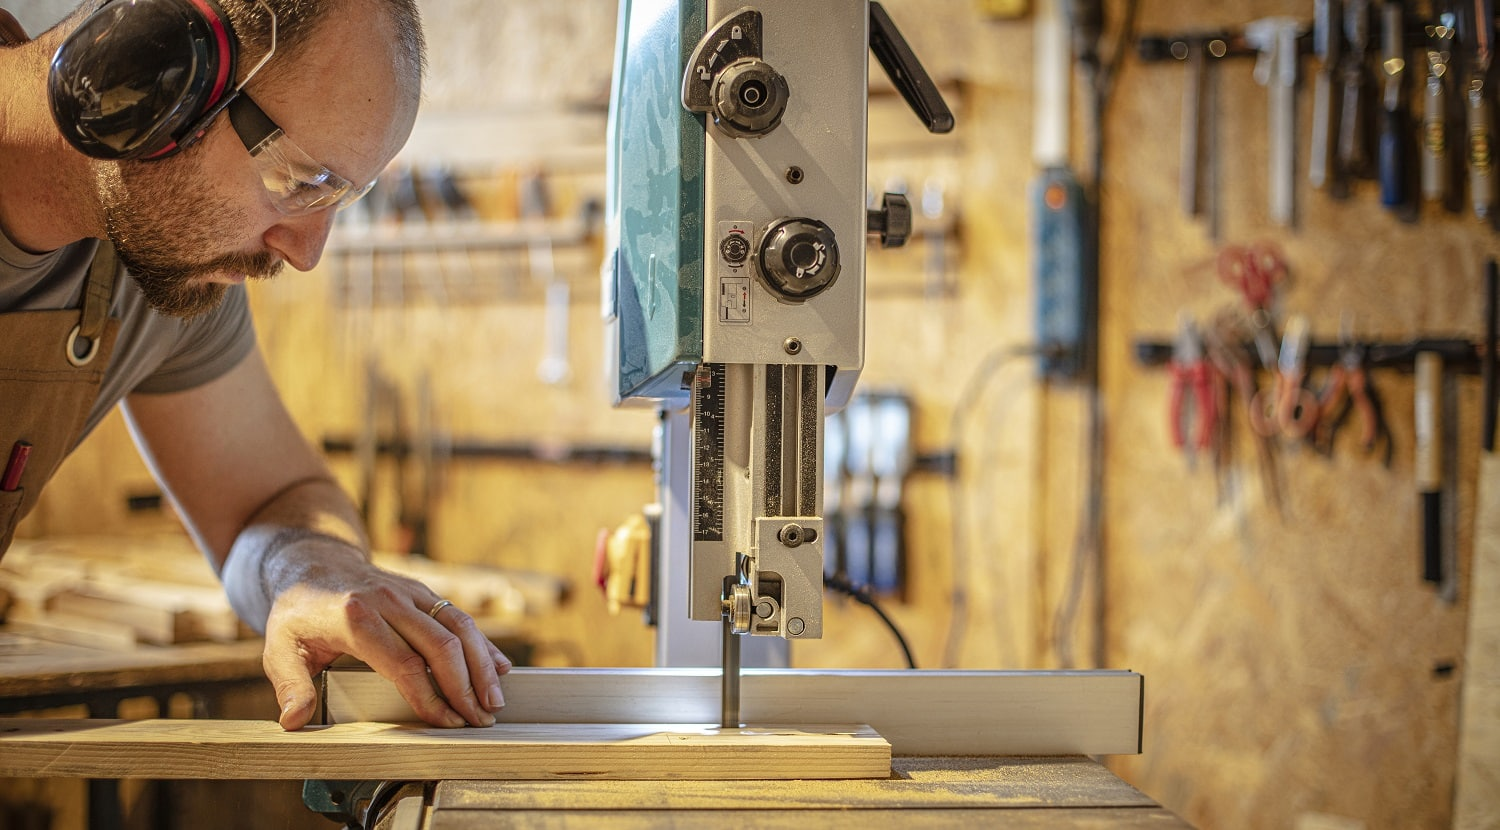 portrait of a carpenter inside his carpentry workshop using a band saw. Wear ear and eye protection